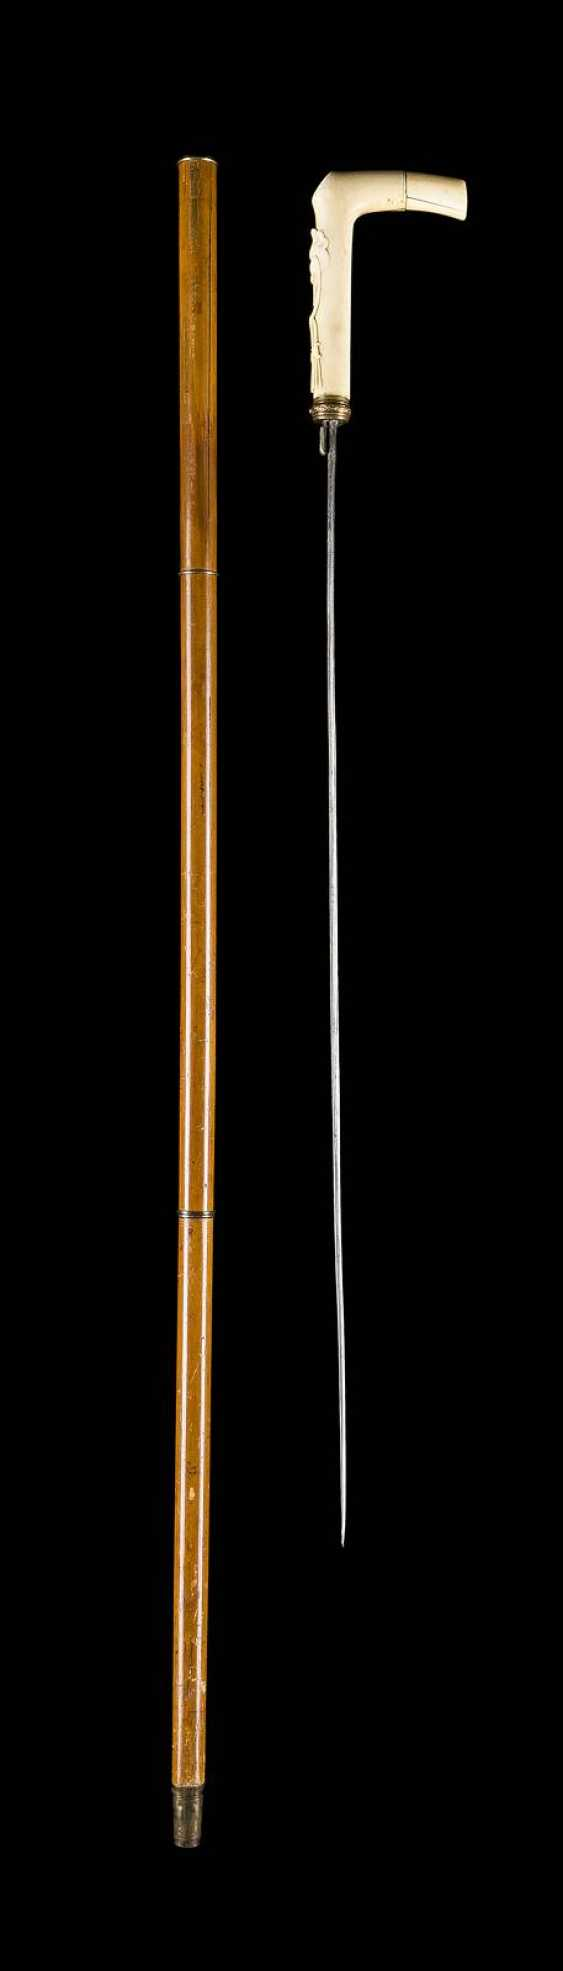 SYSTEM WALKING STICK WITH BUILT-IN BLADE - photo 3